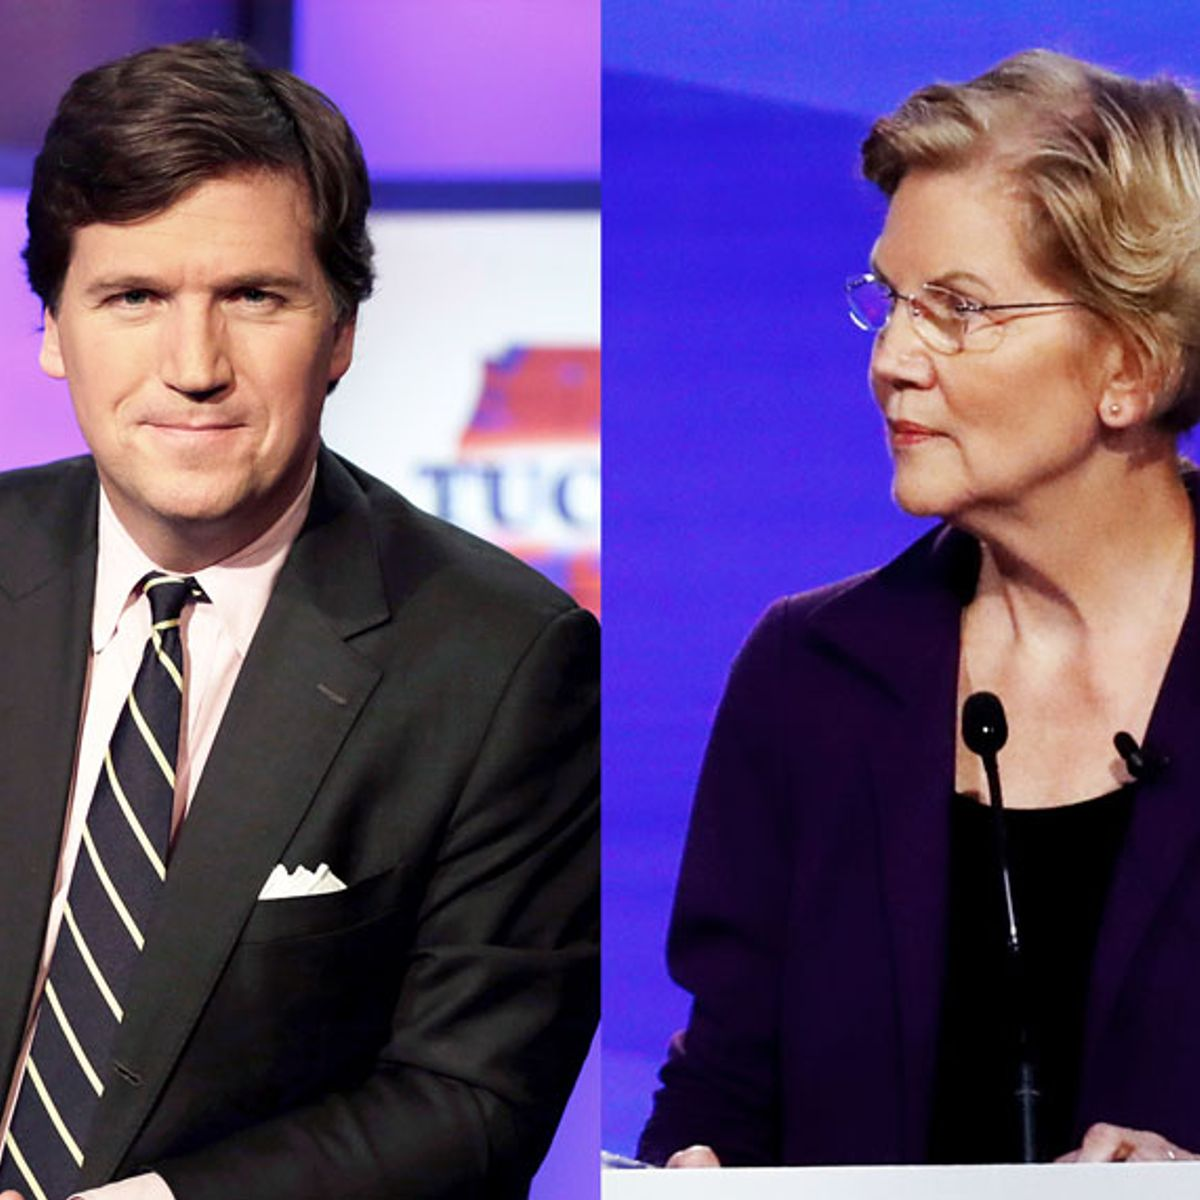 Fox News host Tucker Carlson accuses Elizabeth Warren of lying about sexual harassment allegation